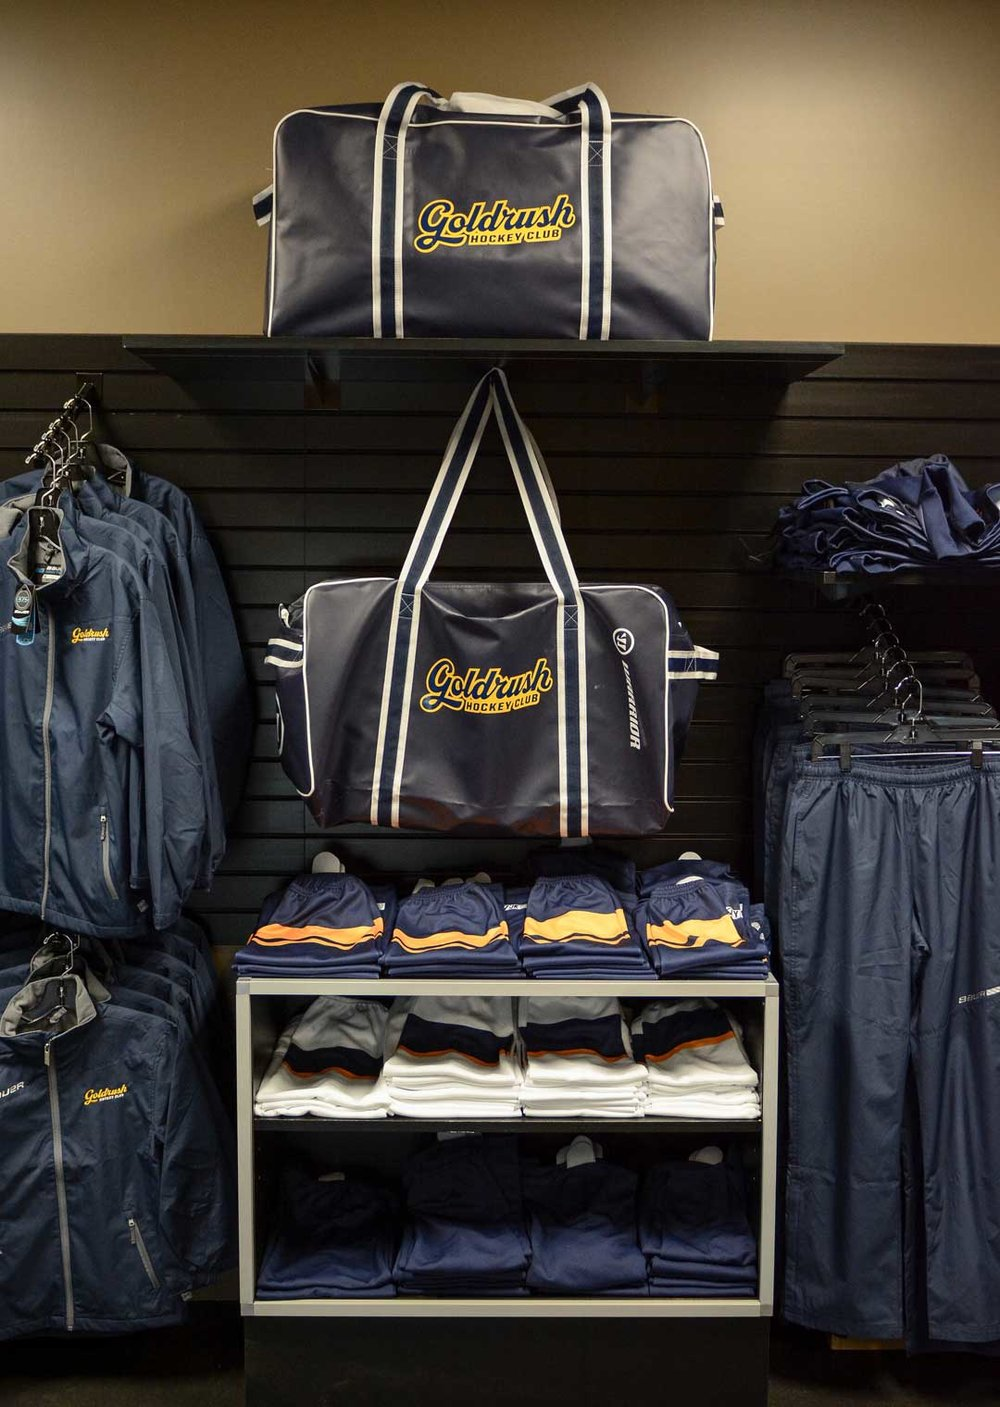 goldrush-hockey-bags-2jpg